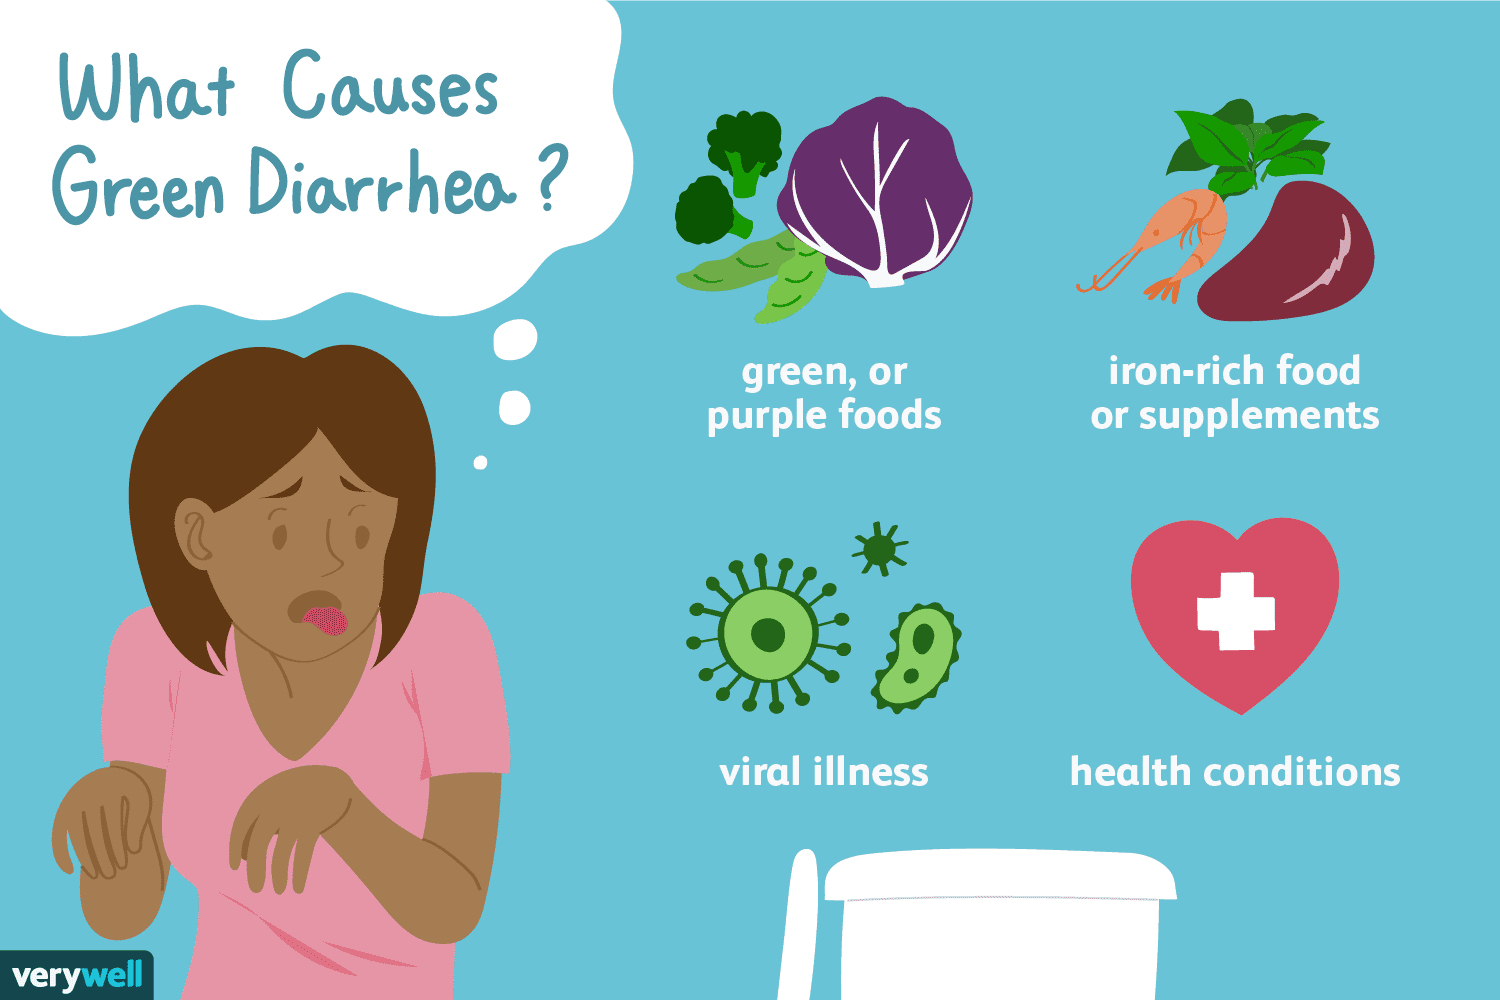 What Causes Green Diarrhea?